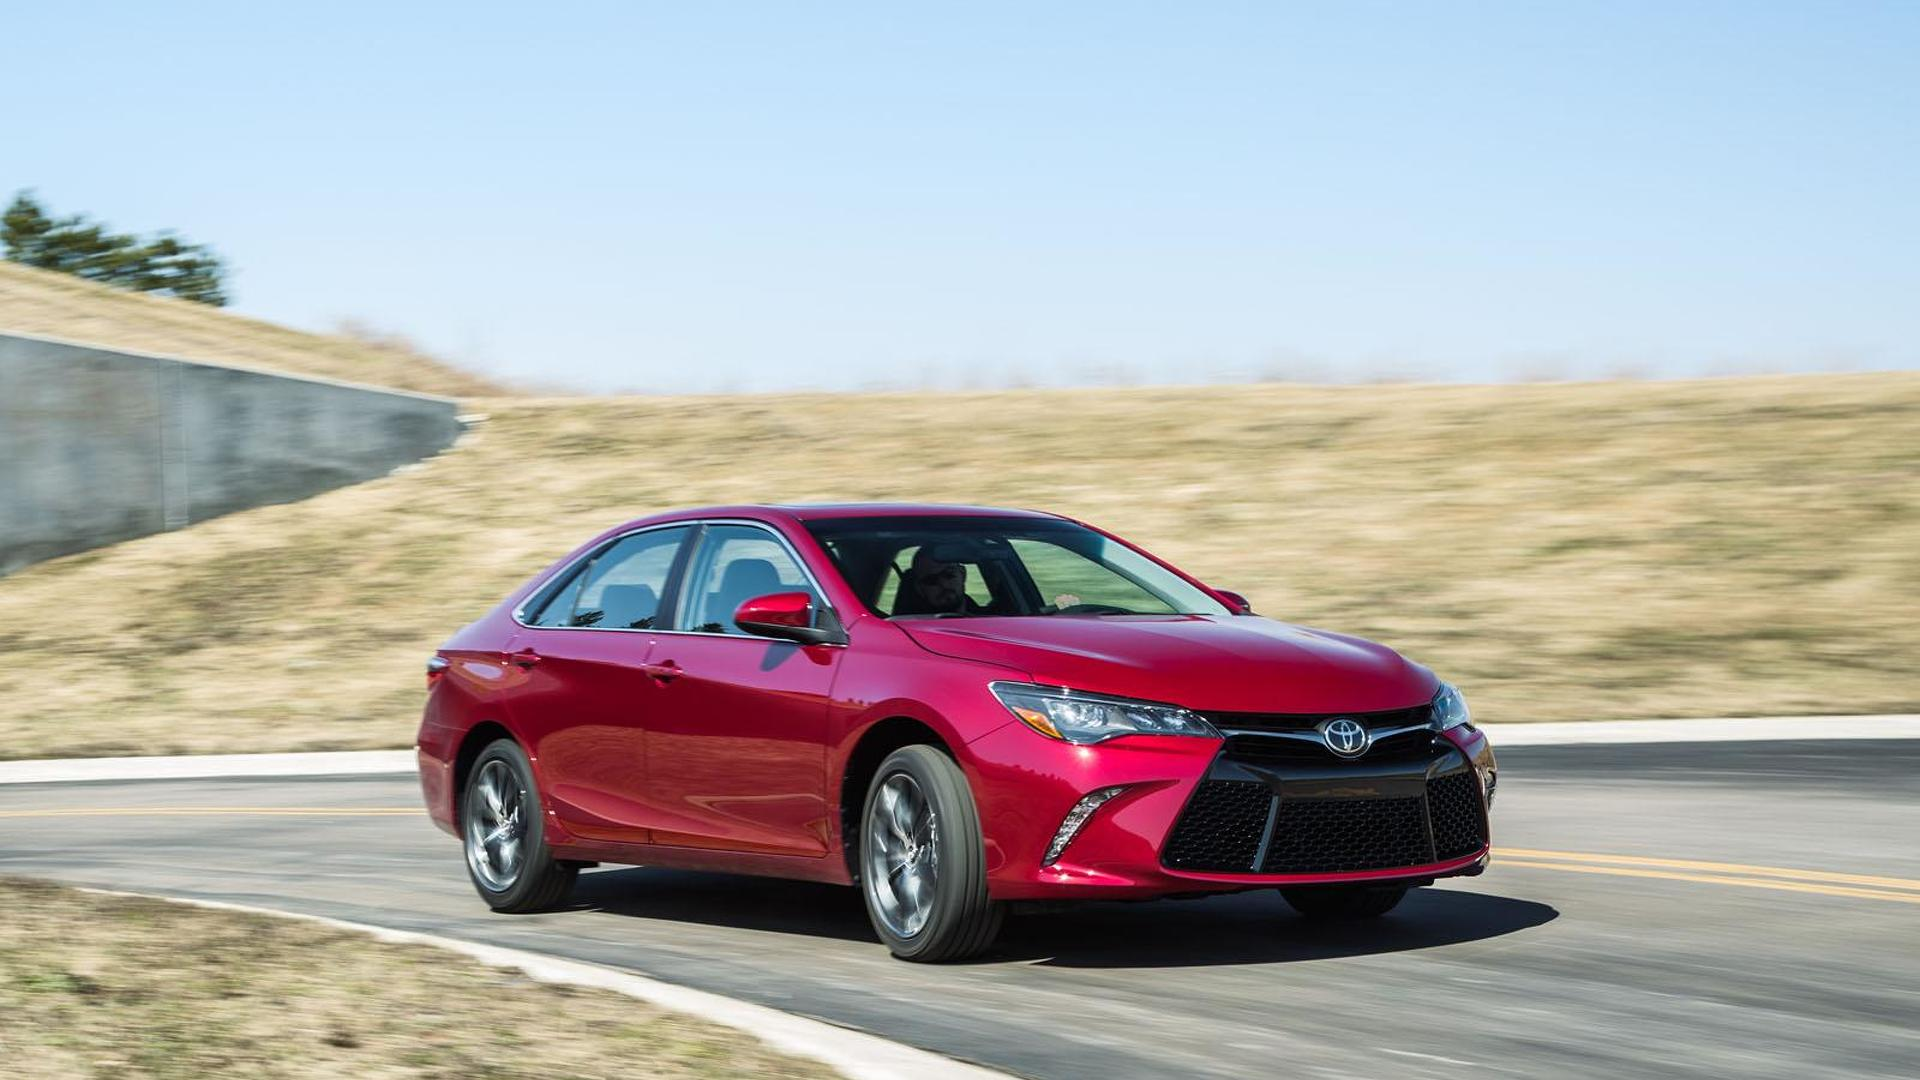 Toyota working on cars that hover - report